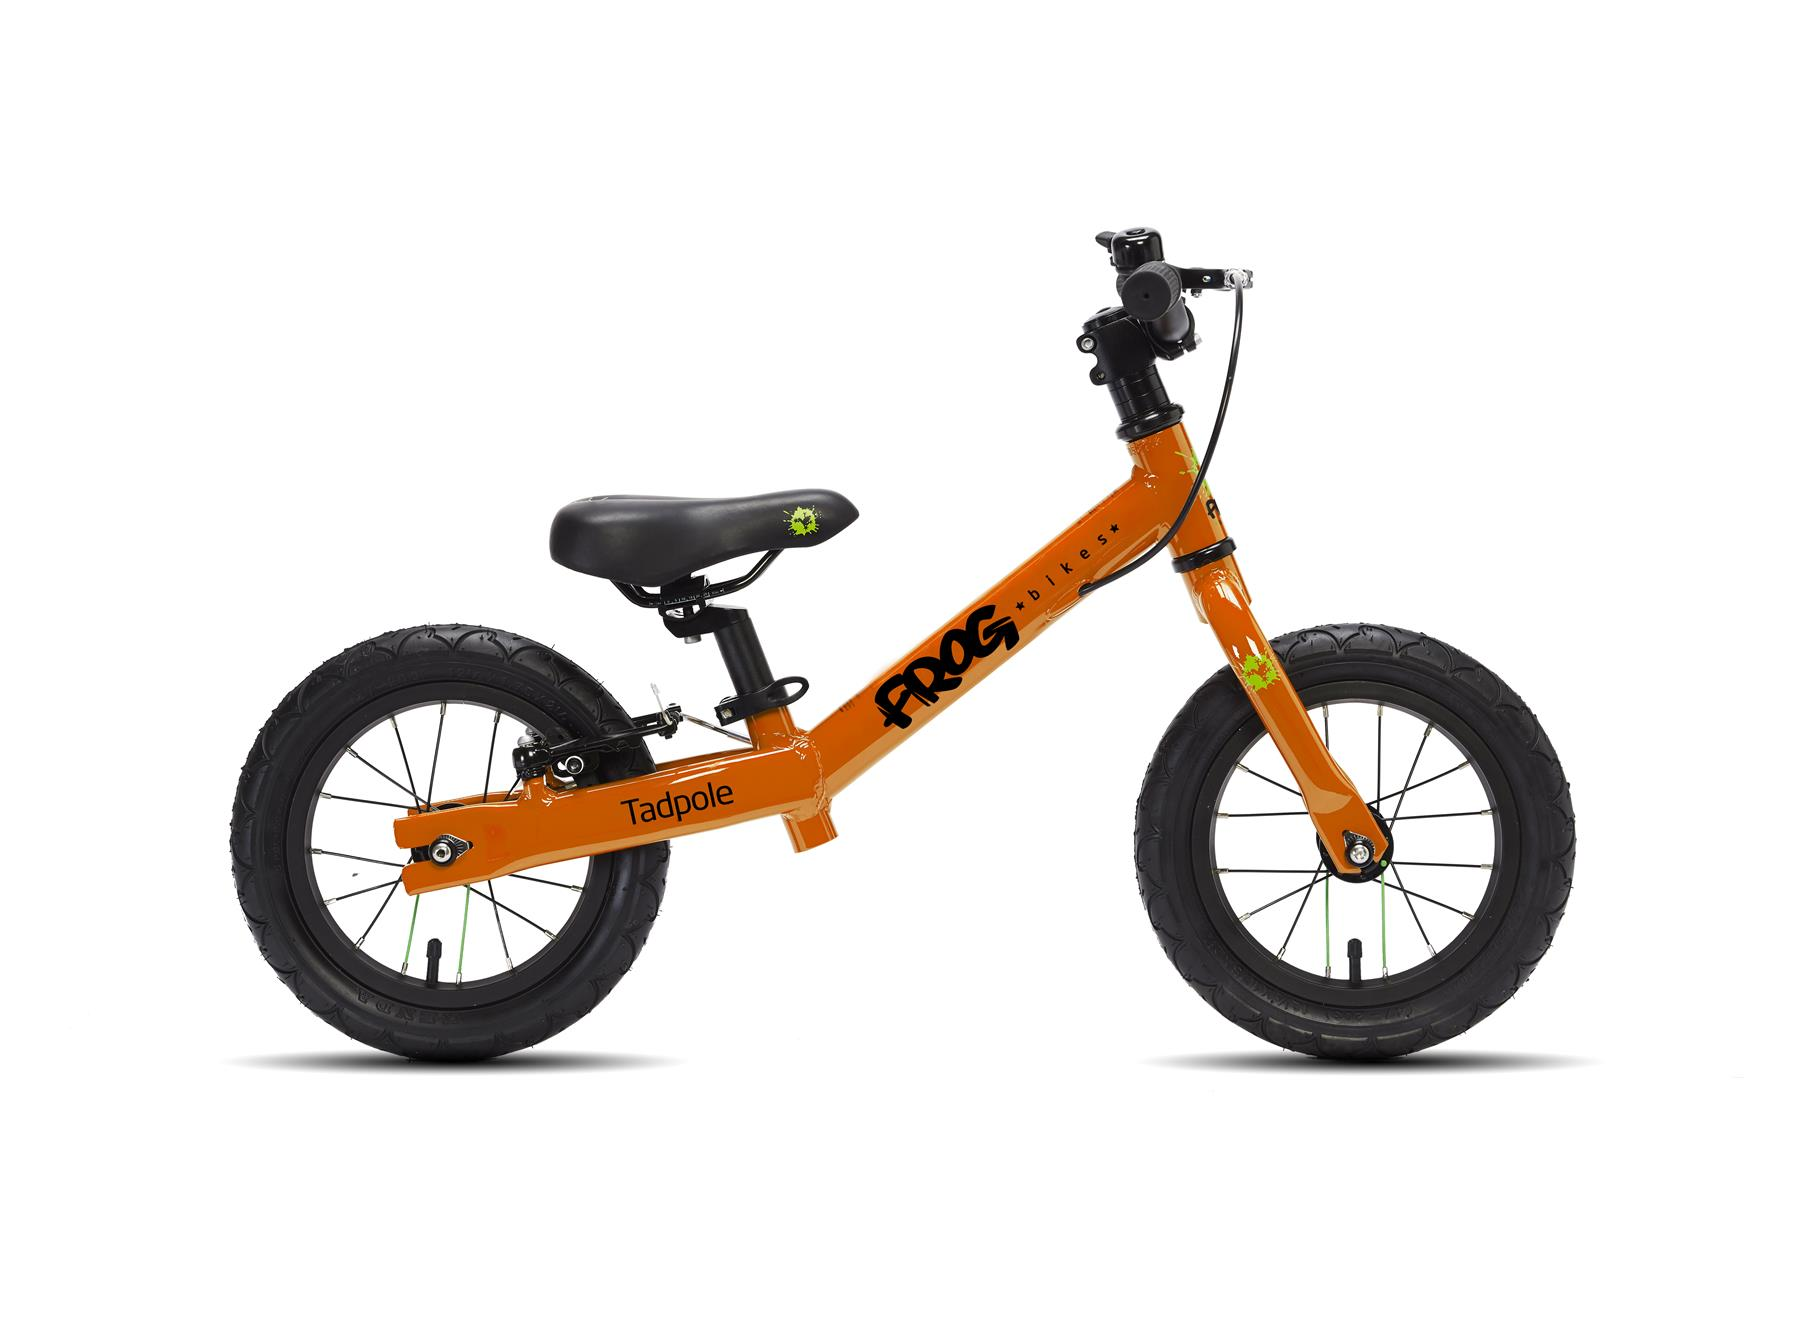 Londongreencycles frog bike tadpole orange